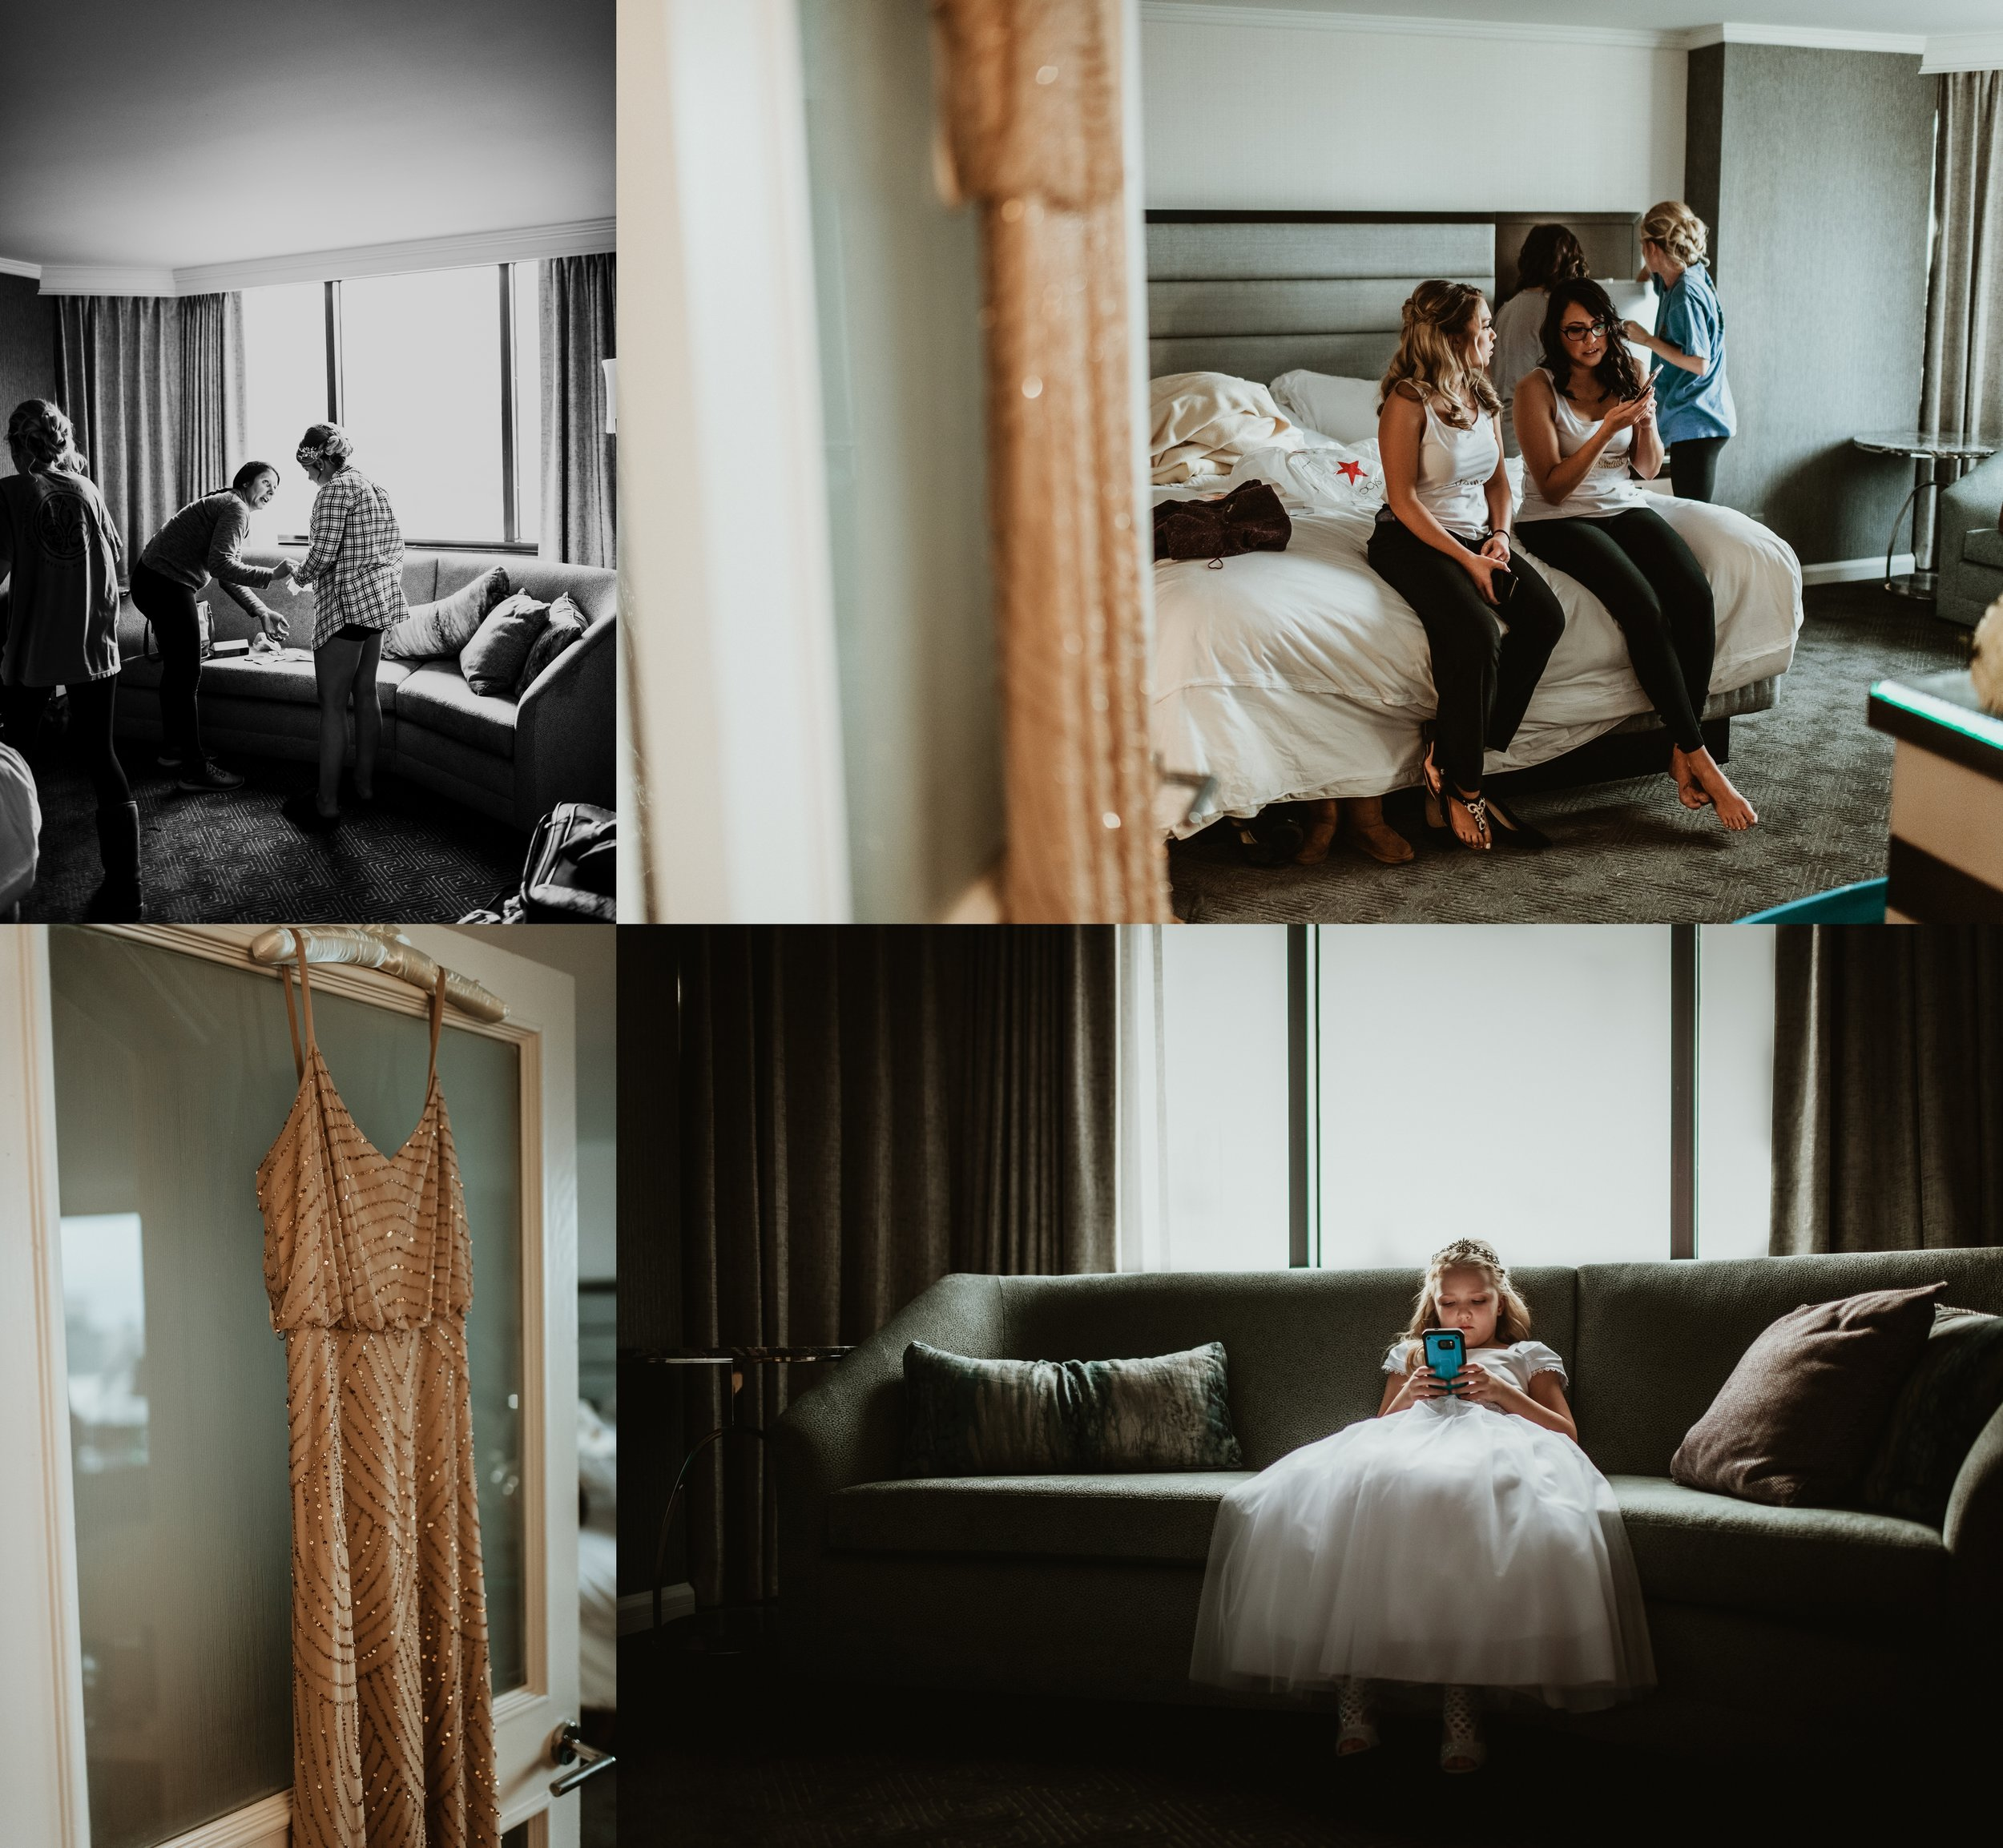 Classic Vintage Wedding | Ritz Carlton Atlanta, Georgia | Terry Farms Photography | Wedding Getting Ready Photos